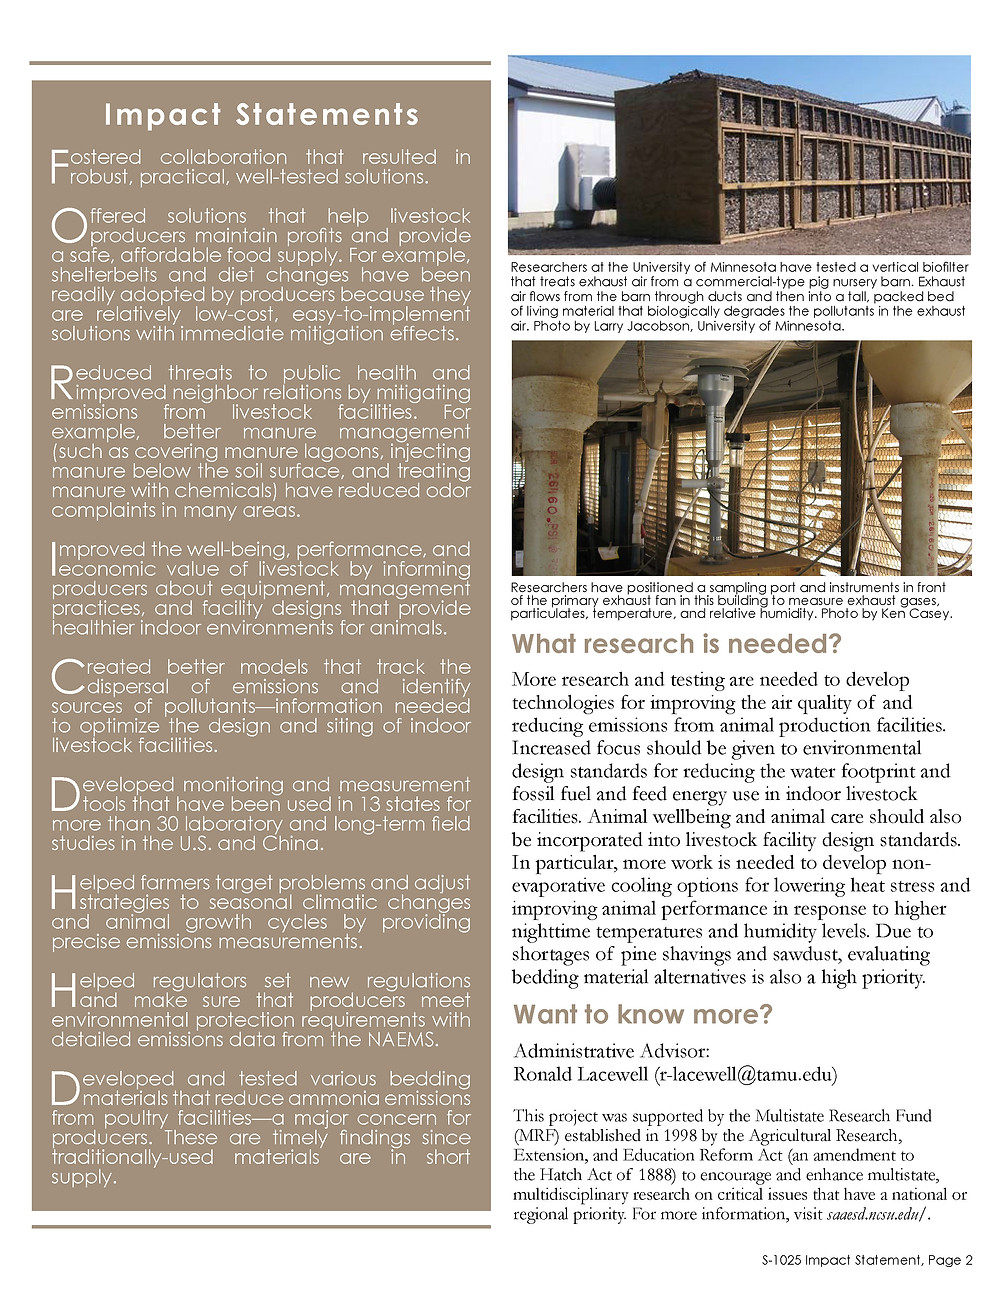 Click on the image below to view/download a high-resolution PDF of the Impact Statement.